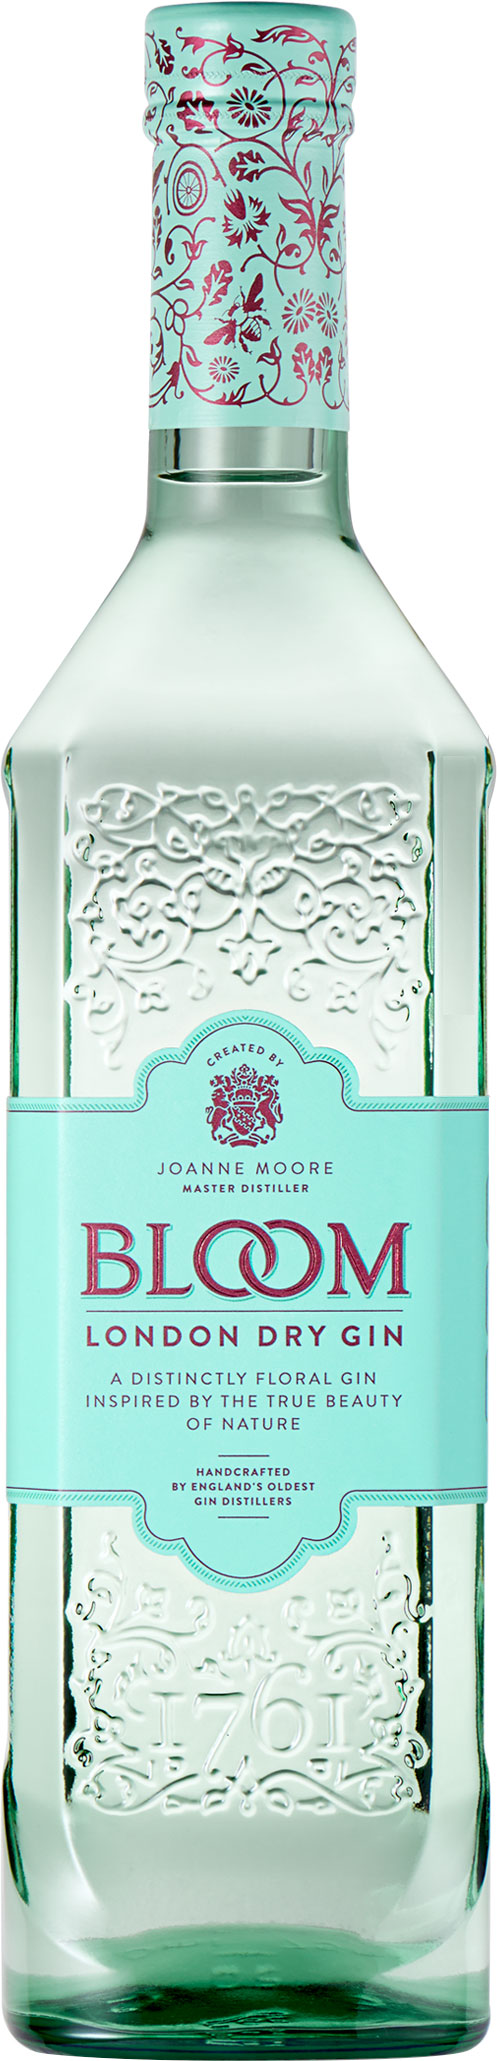 Bloom - Gin 70cl Bottle